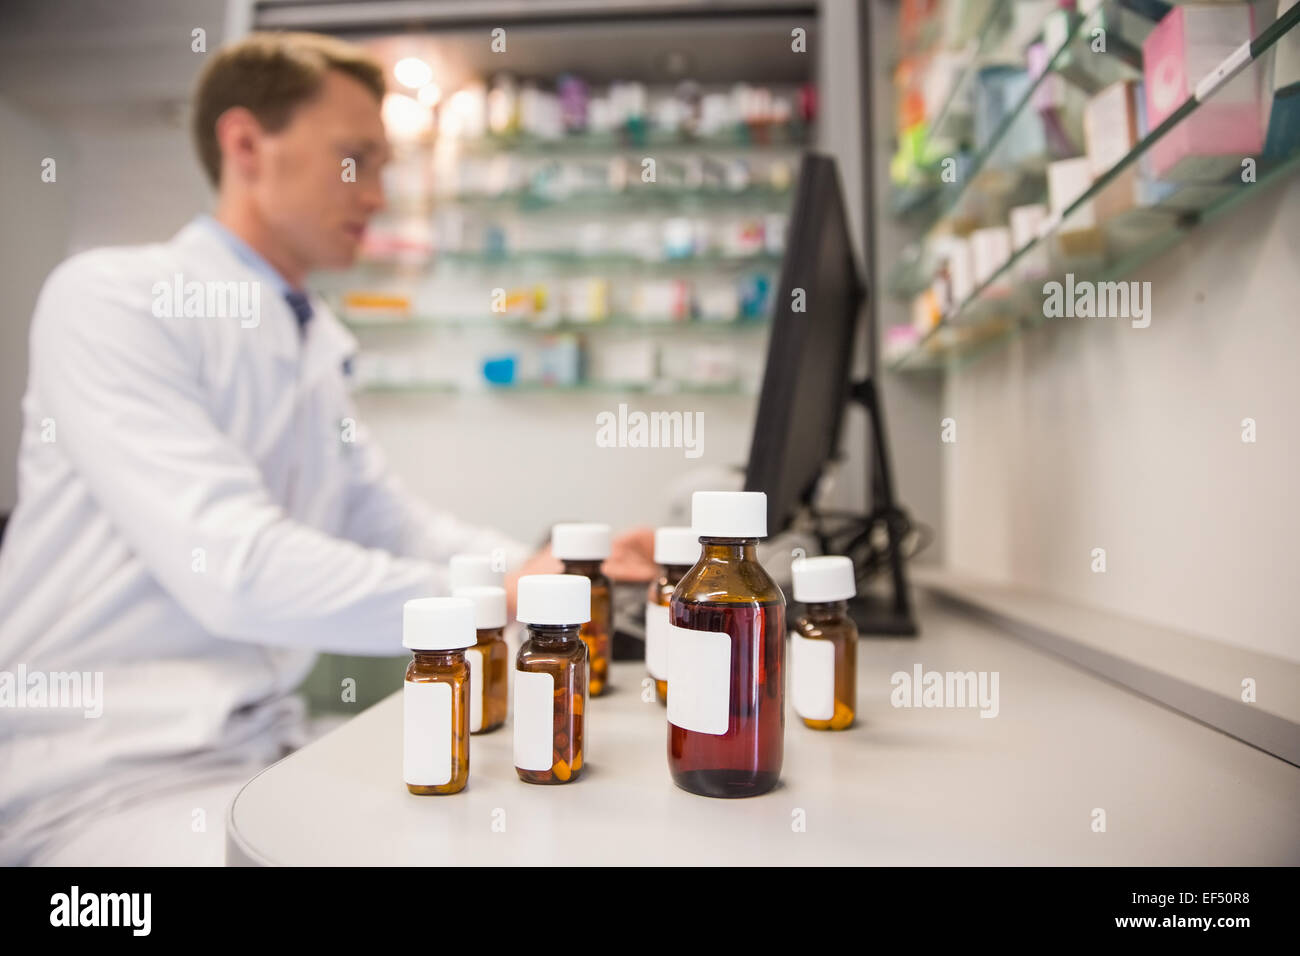 Pharmacist using computer at desk - Stock Image